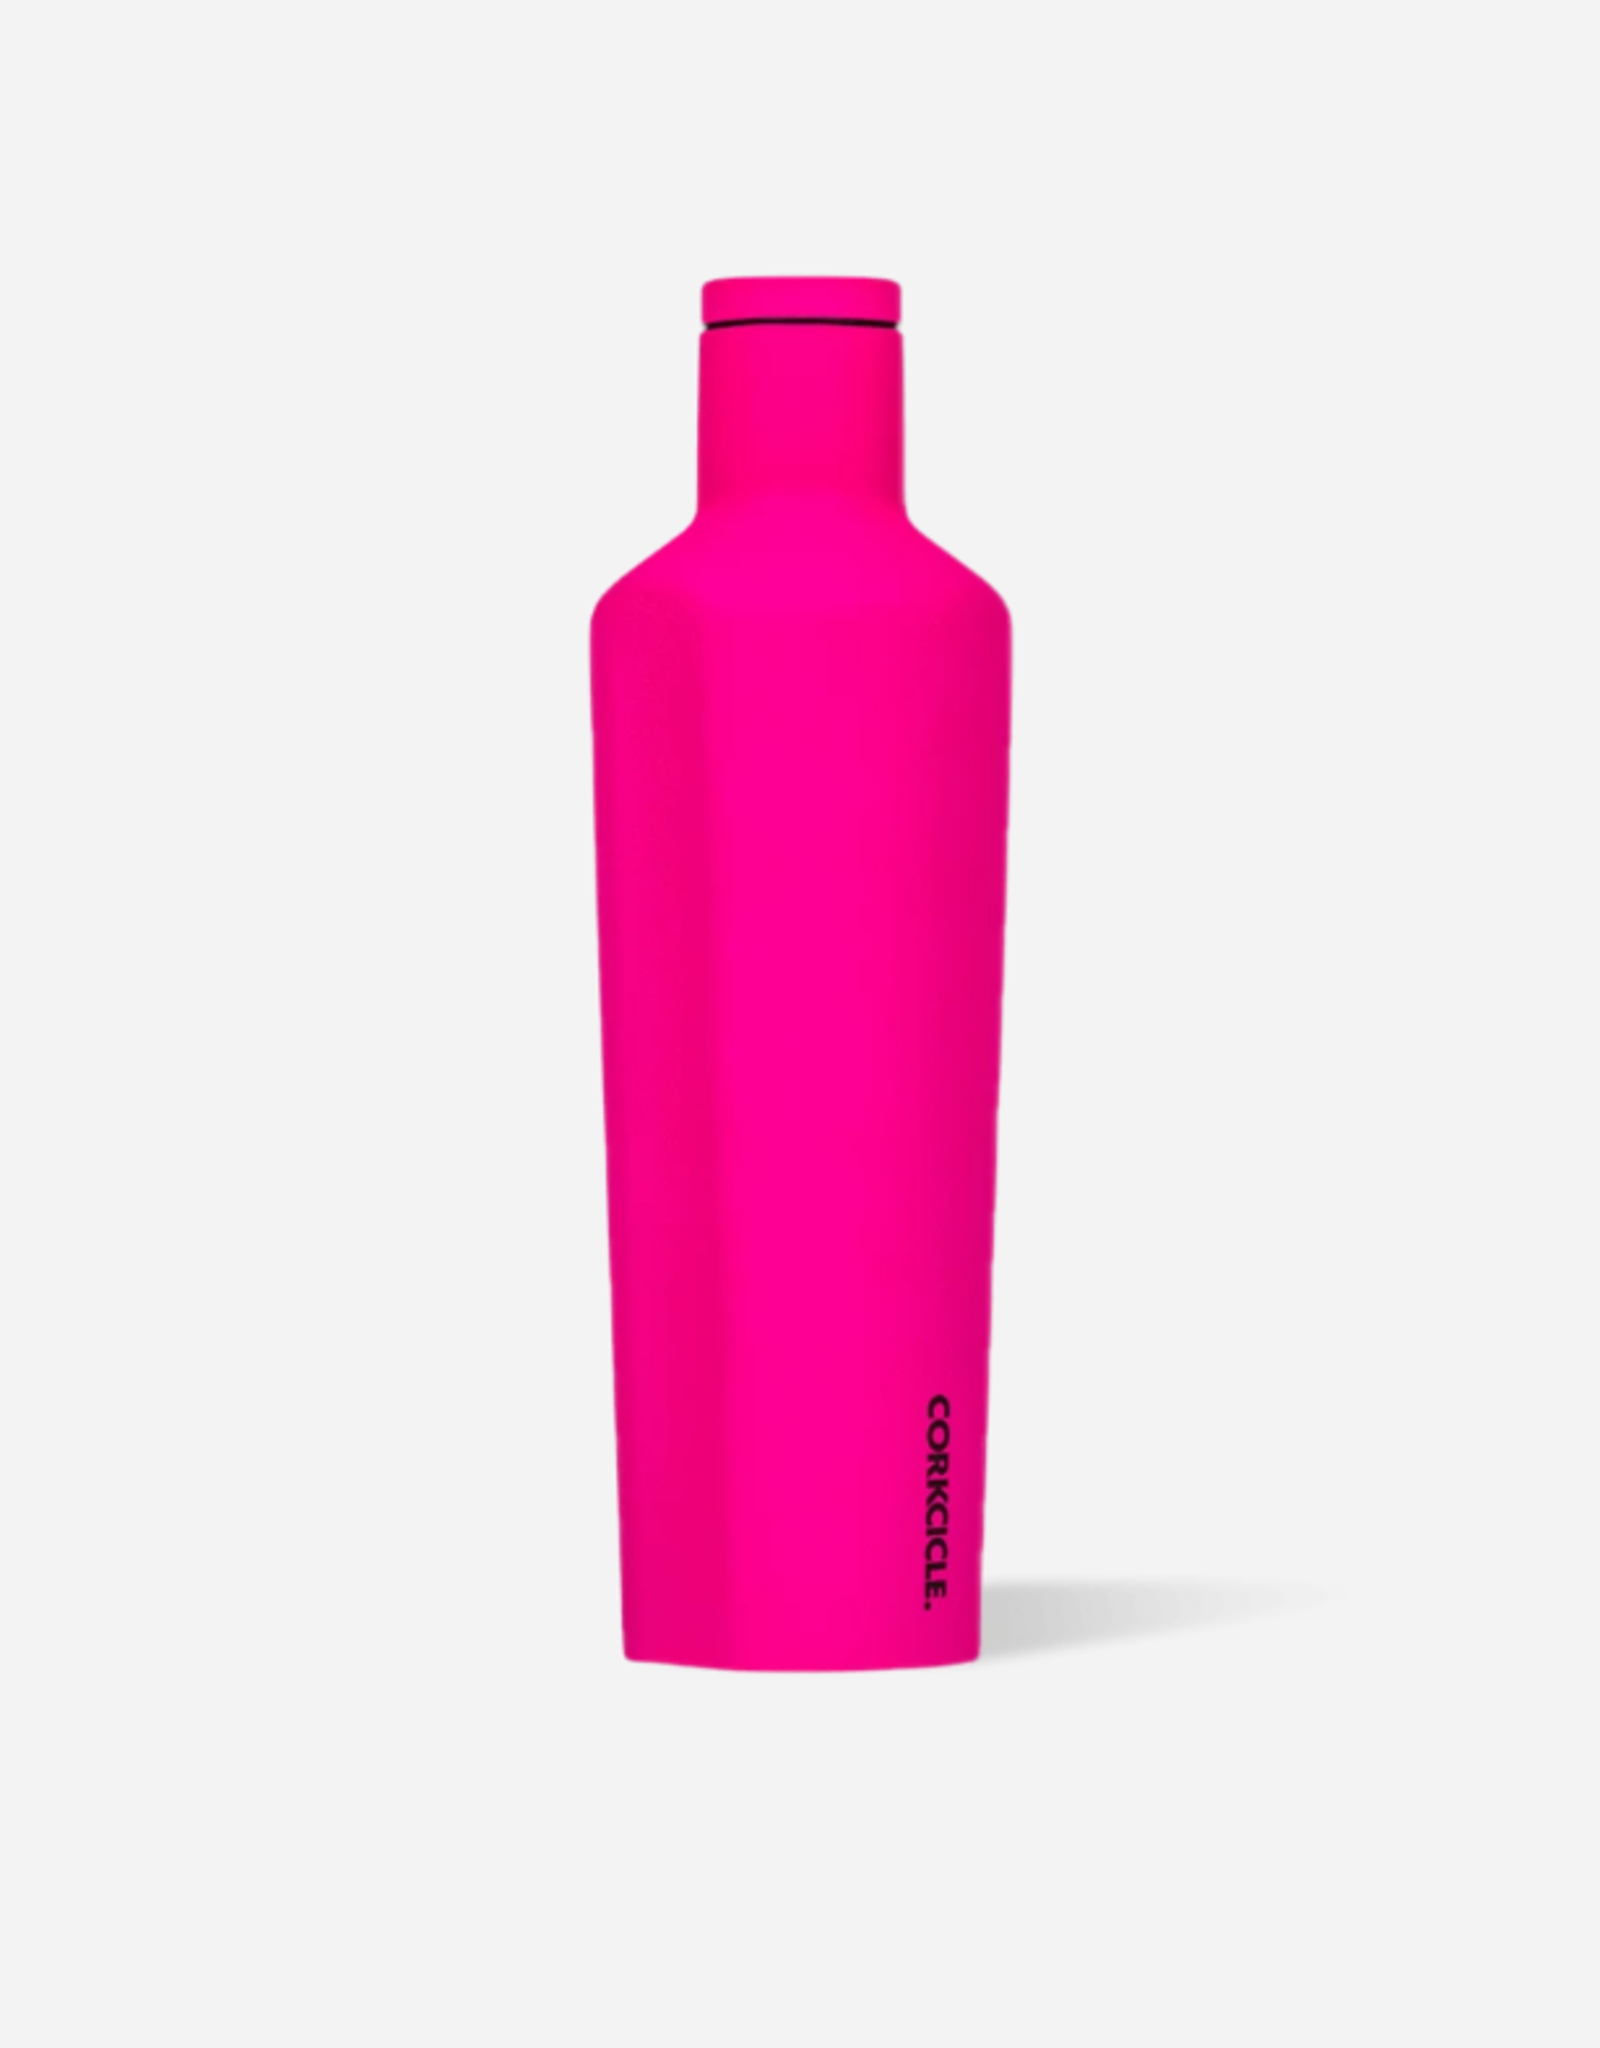 Corkcicle Corkcicle Canteen 25oz Neon Pink